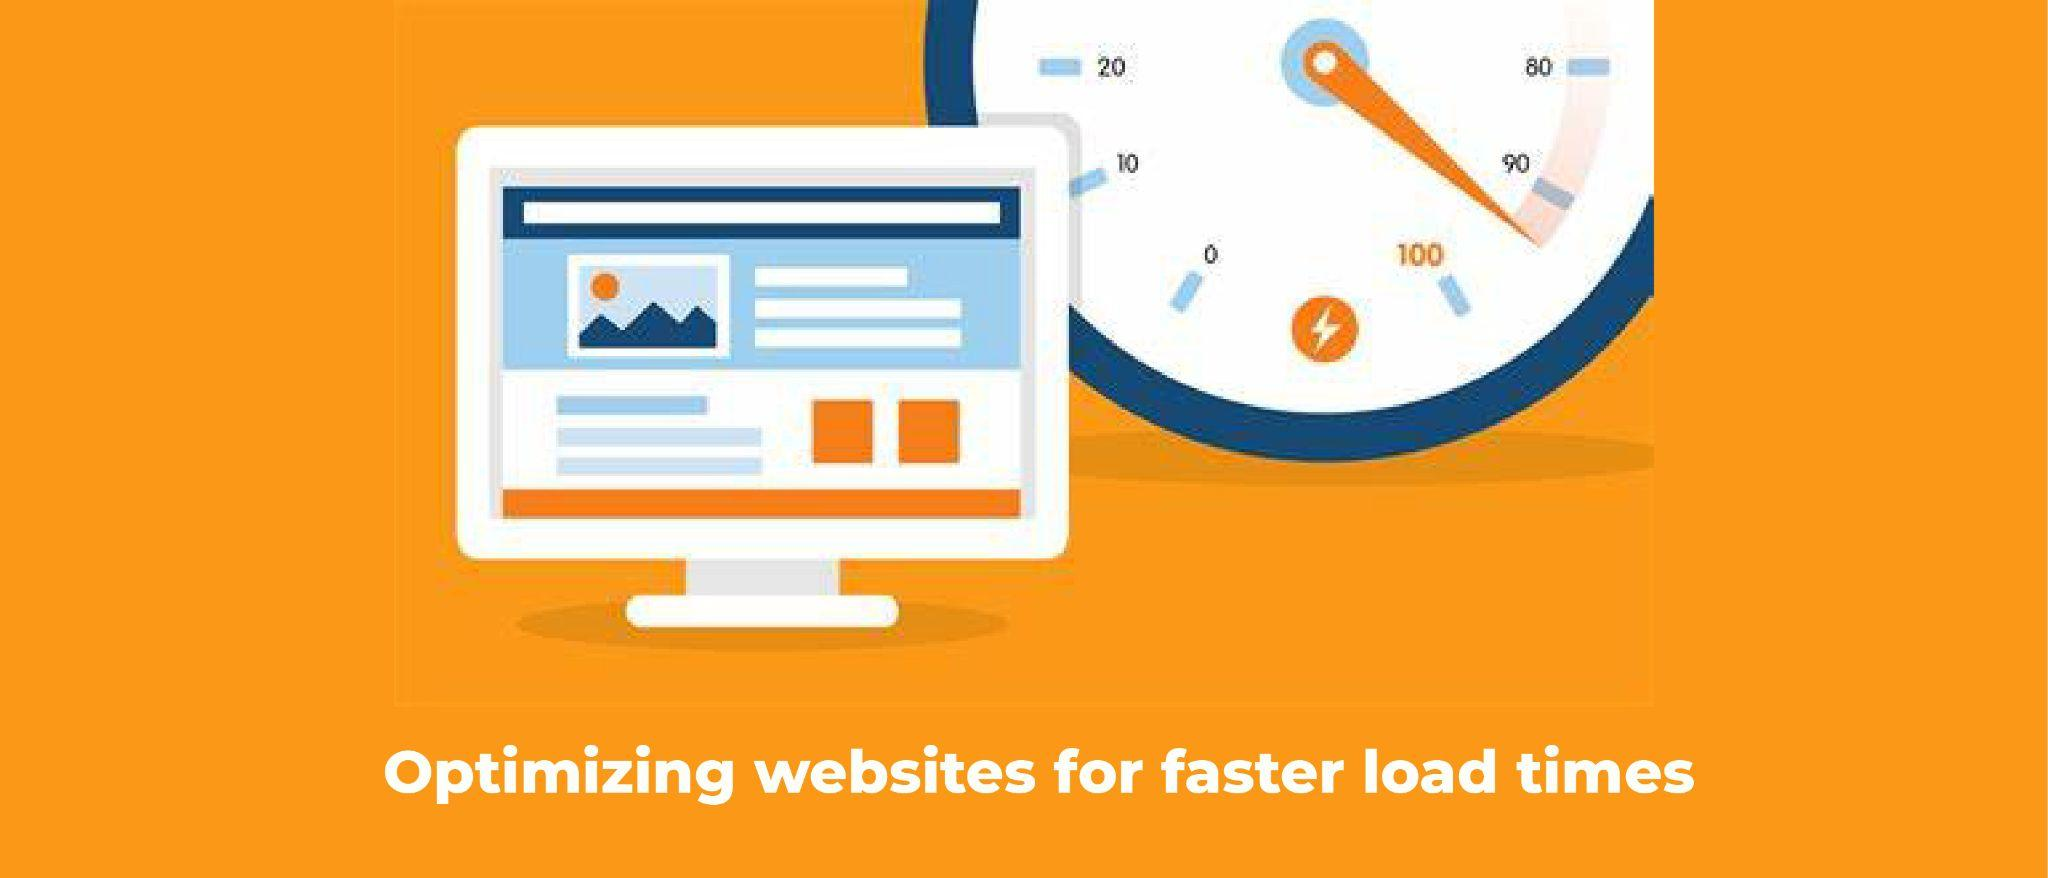 Optimizing websites for faster load times